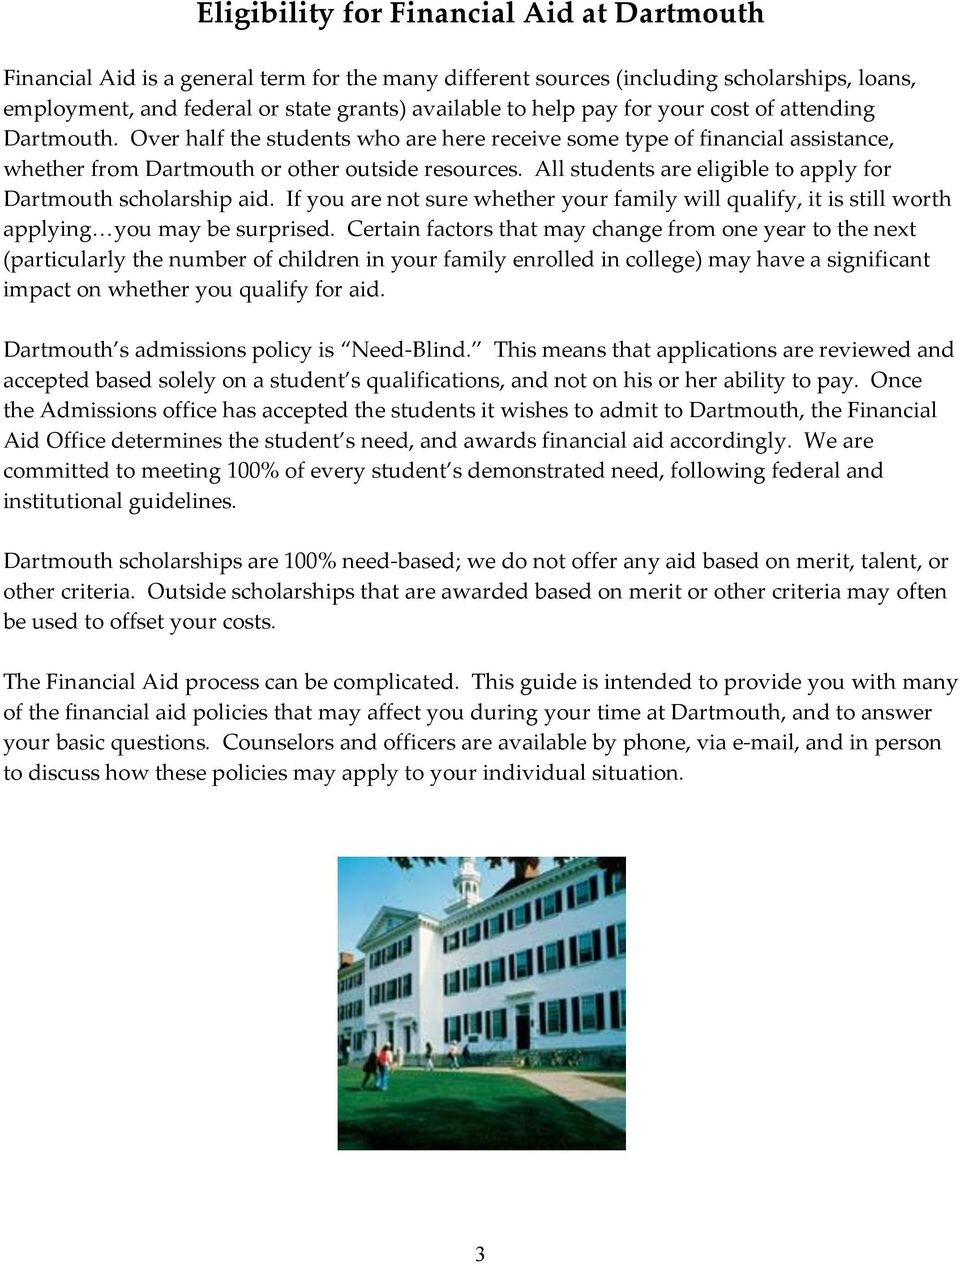 All students are eligible to apply for Dartmouth scholarship aid. If you are not sure whether your family will qualify, it is still worth applying you may be surprised.